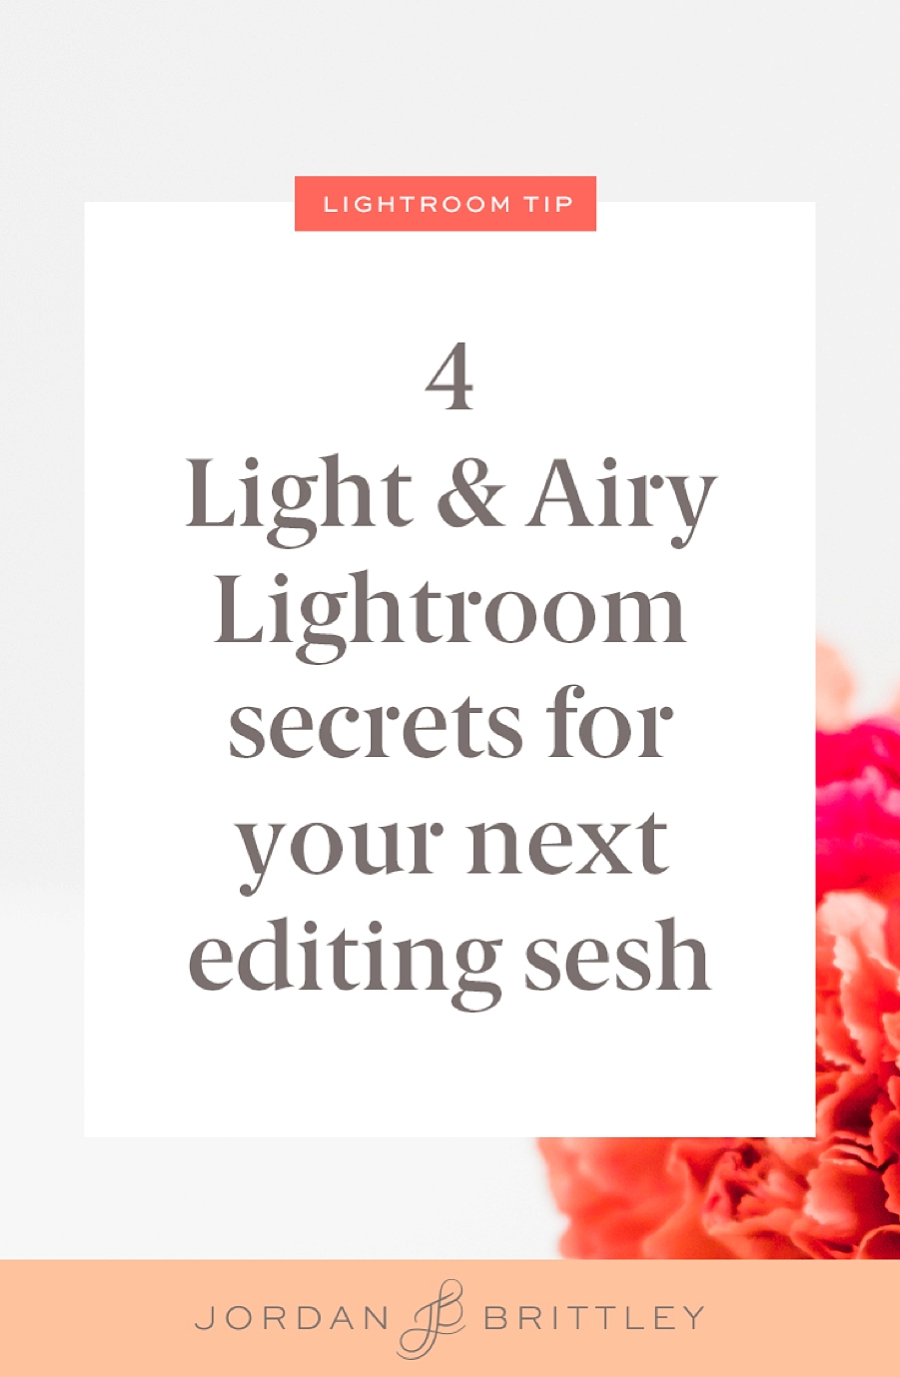 4 light and airy lightroom secrets for your next editing session_0005.jpg